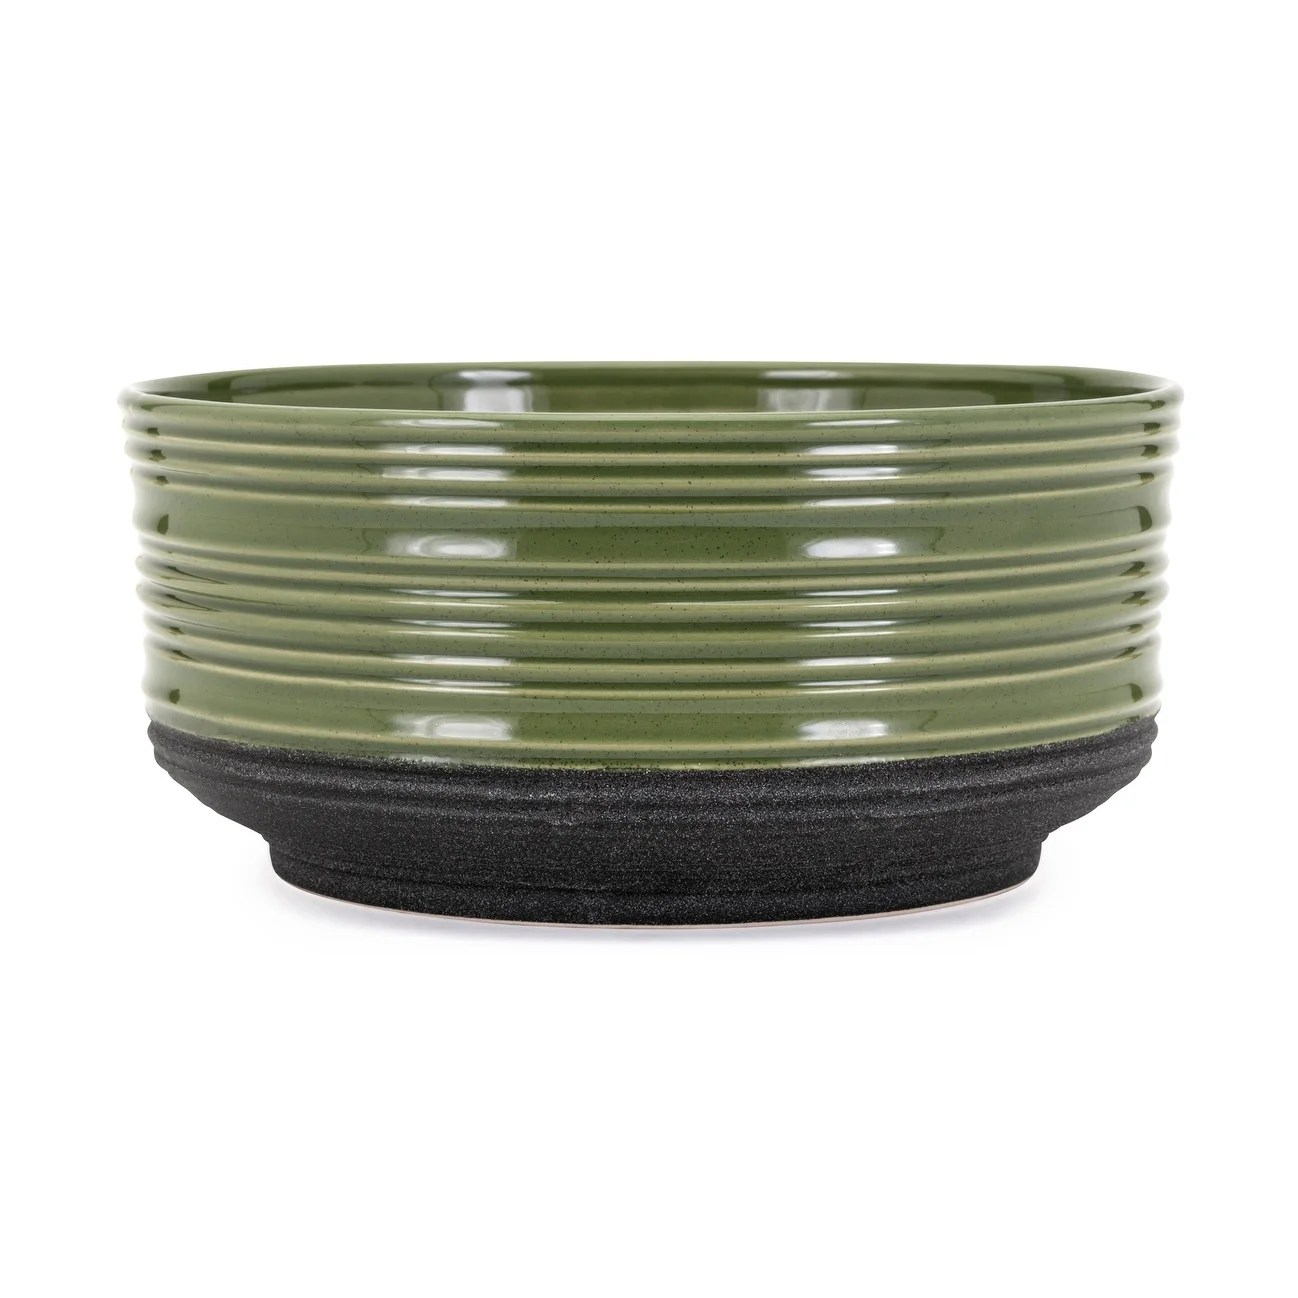 Plante En Pot Ceramic Planter Pot With Banded Surface Texture Green And Black